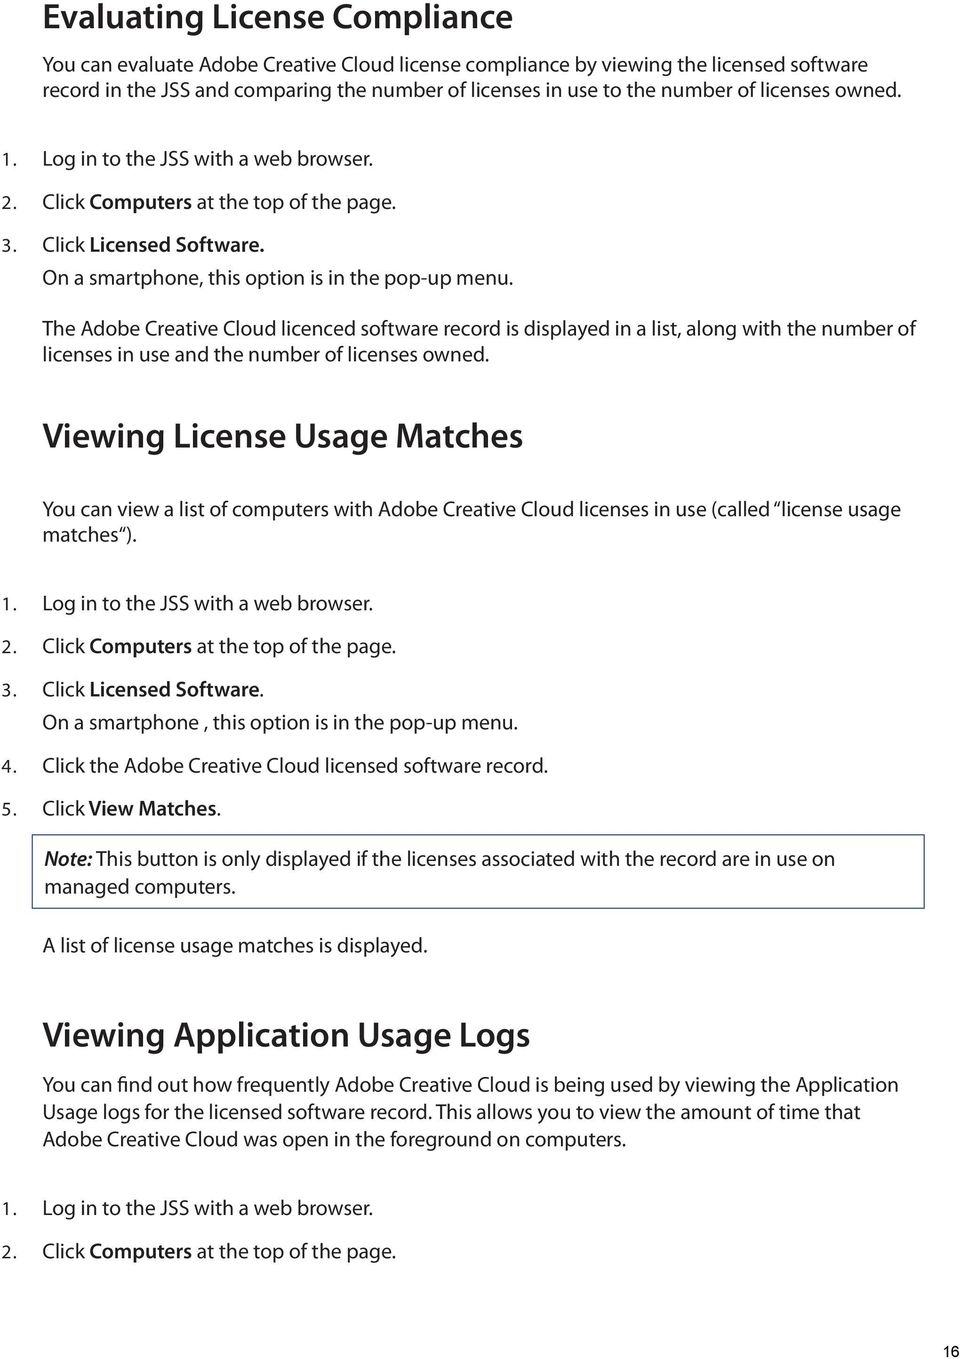 The Adobe Creative Cloud licenced software record is displayed in a list, along with the number of licenses in use and the number of licenses owned.